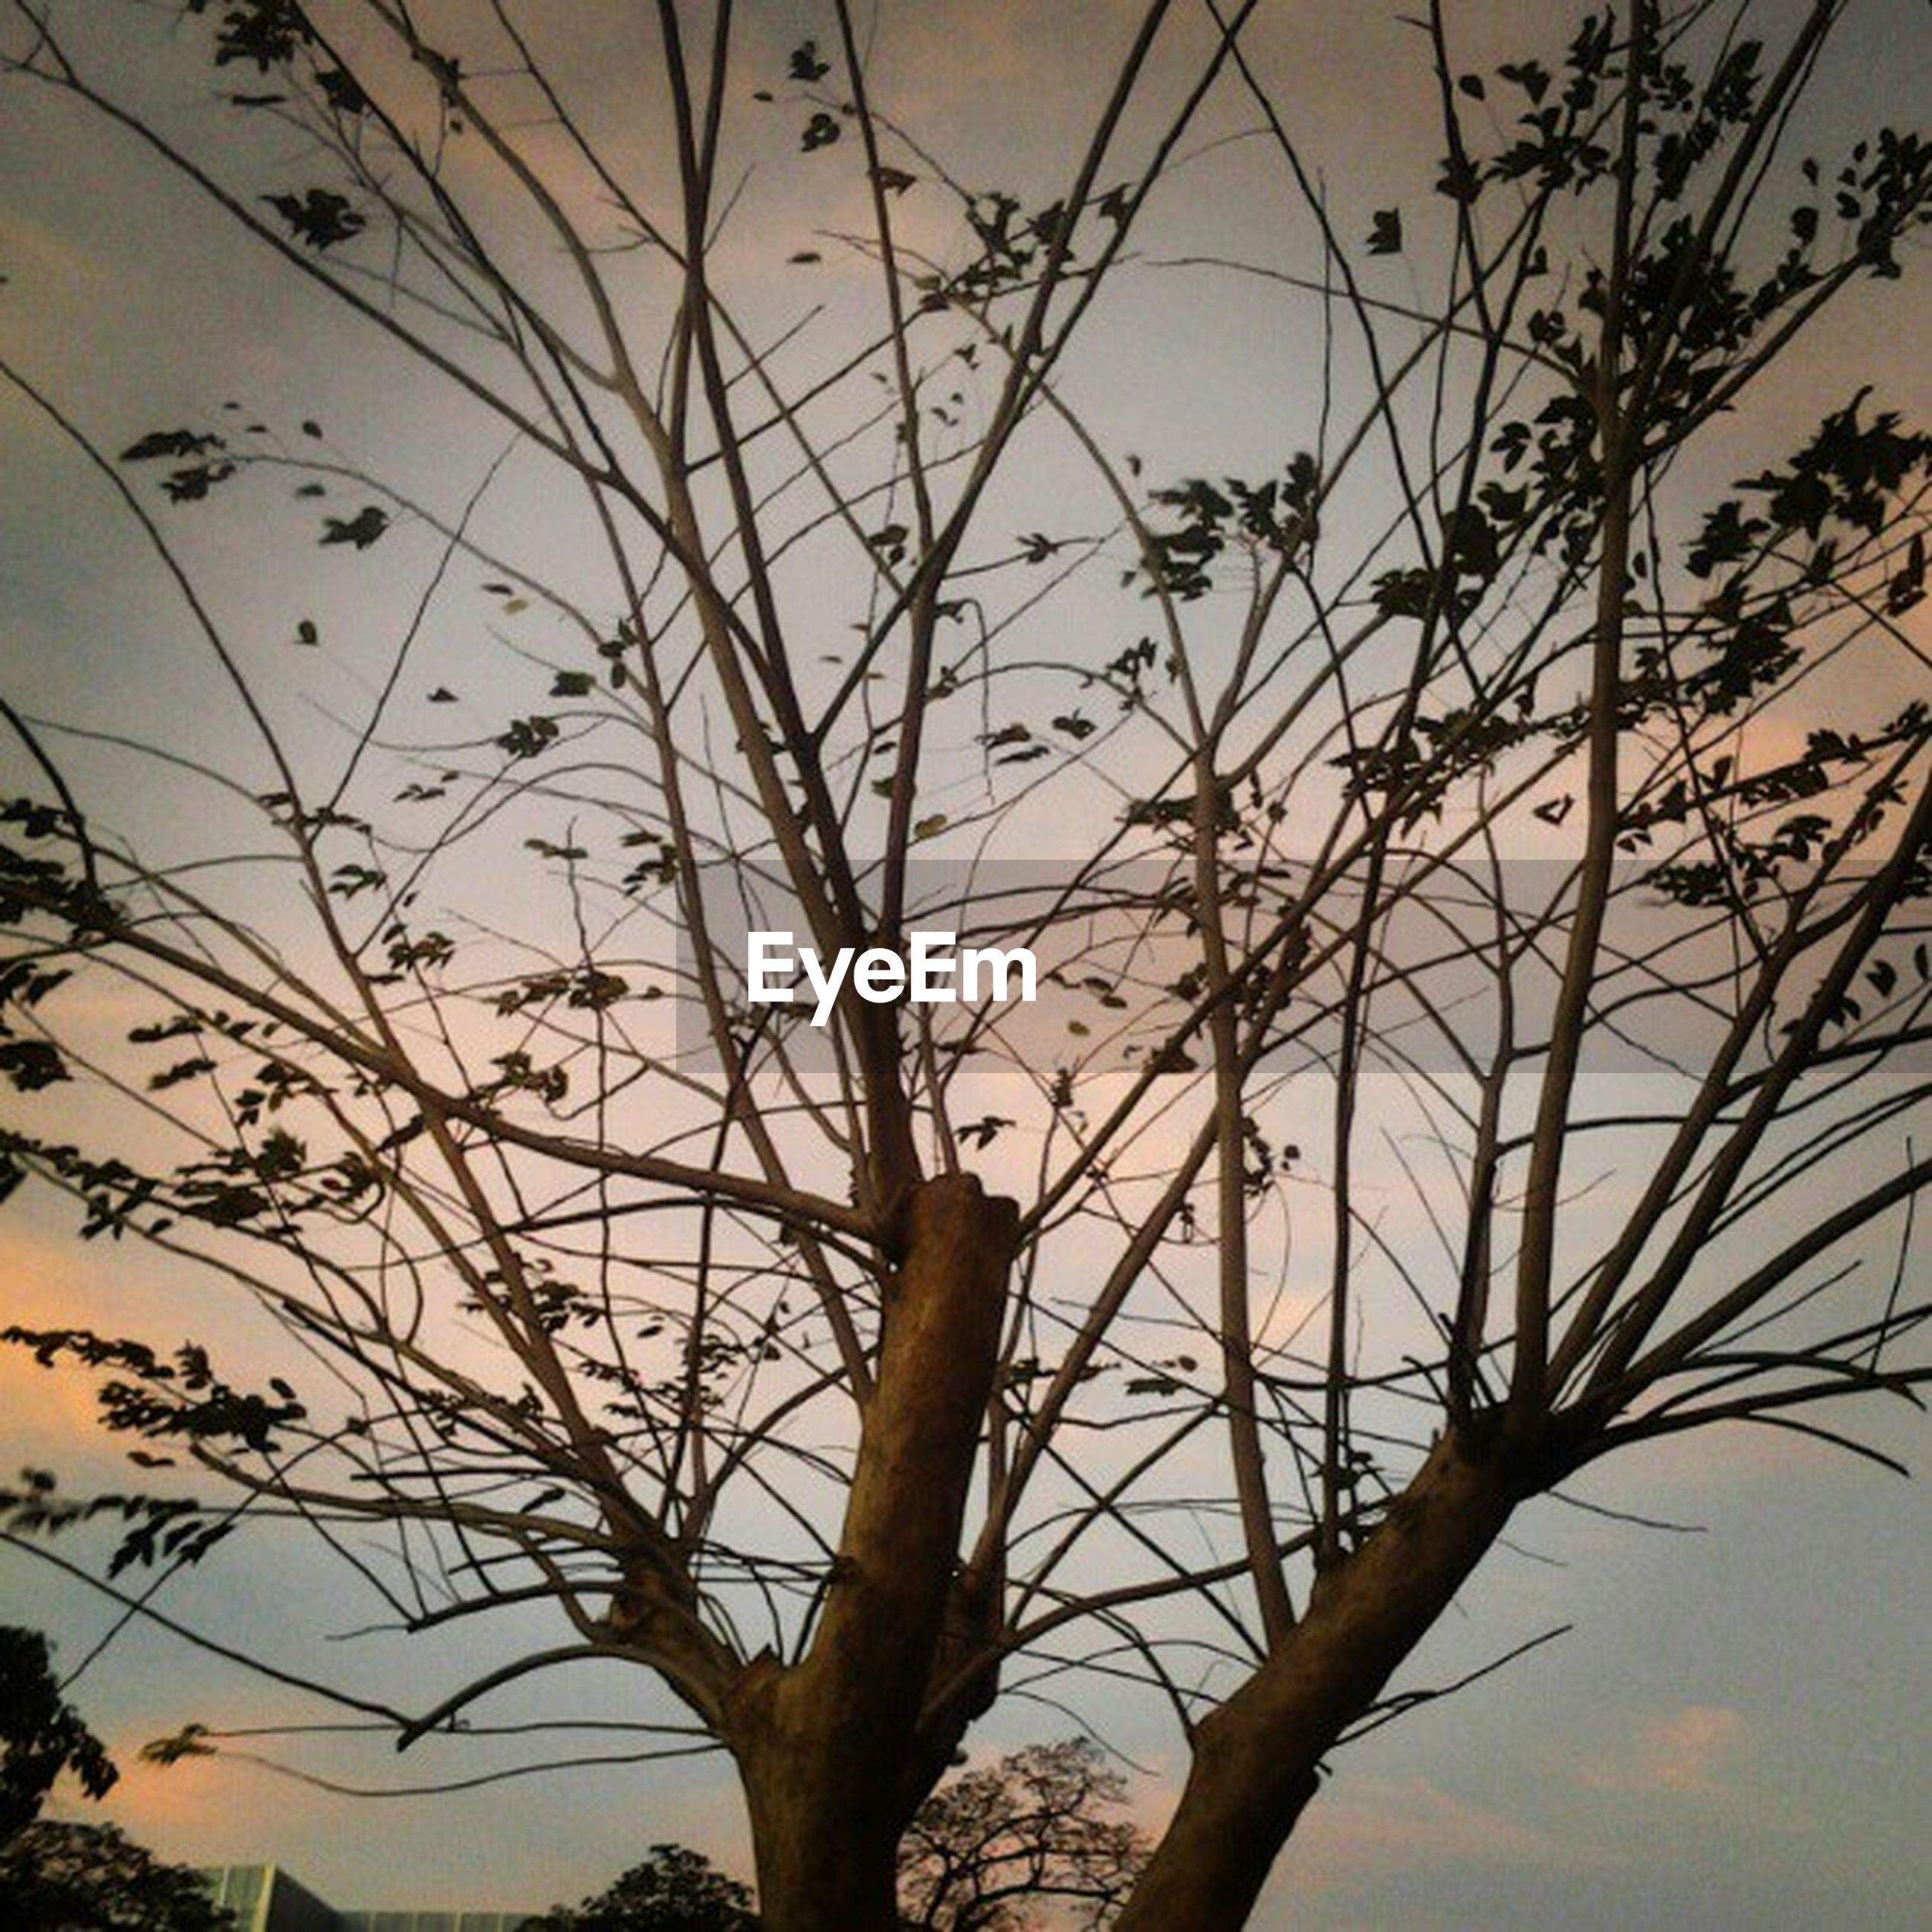 low angle view, branch, silhouette, bare tree, sunset, sky, nature, tranquility, tree, beauty in nature, growth, dusk, outdoors, scenics, no people, plant, tranquil scene, twig, clear sky, close-up